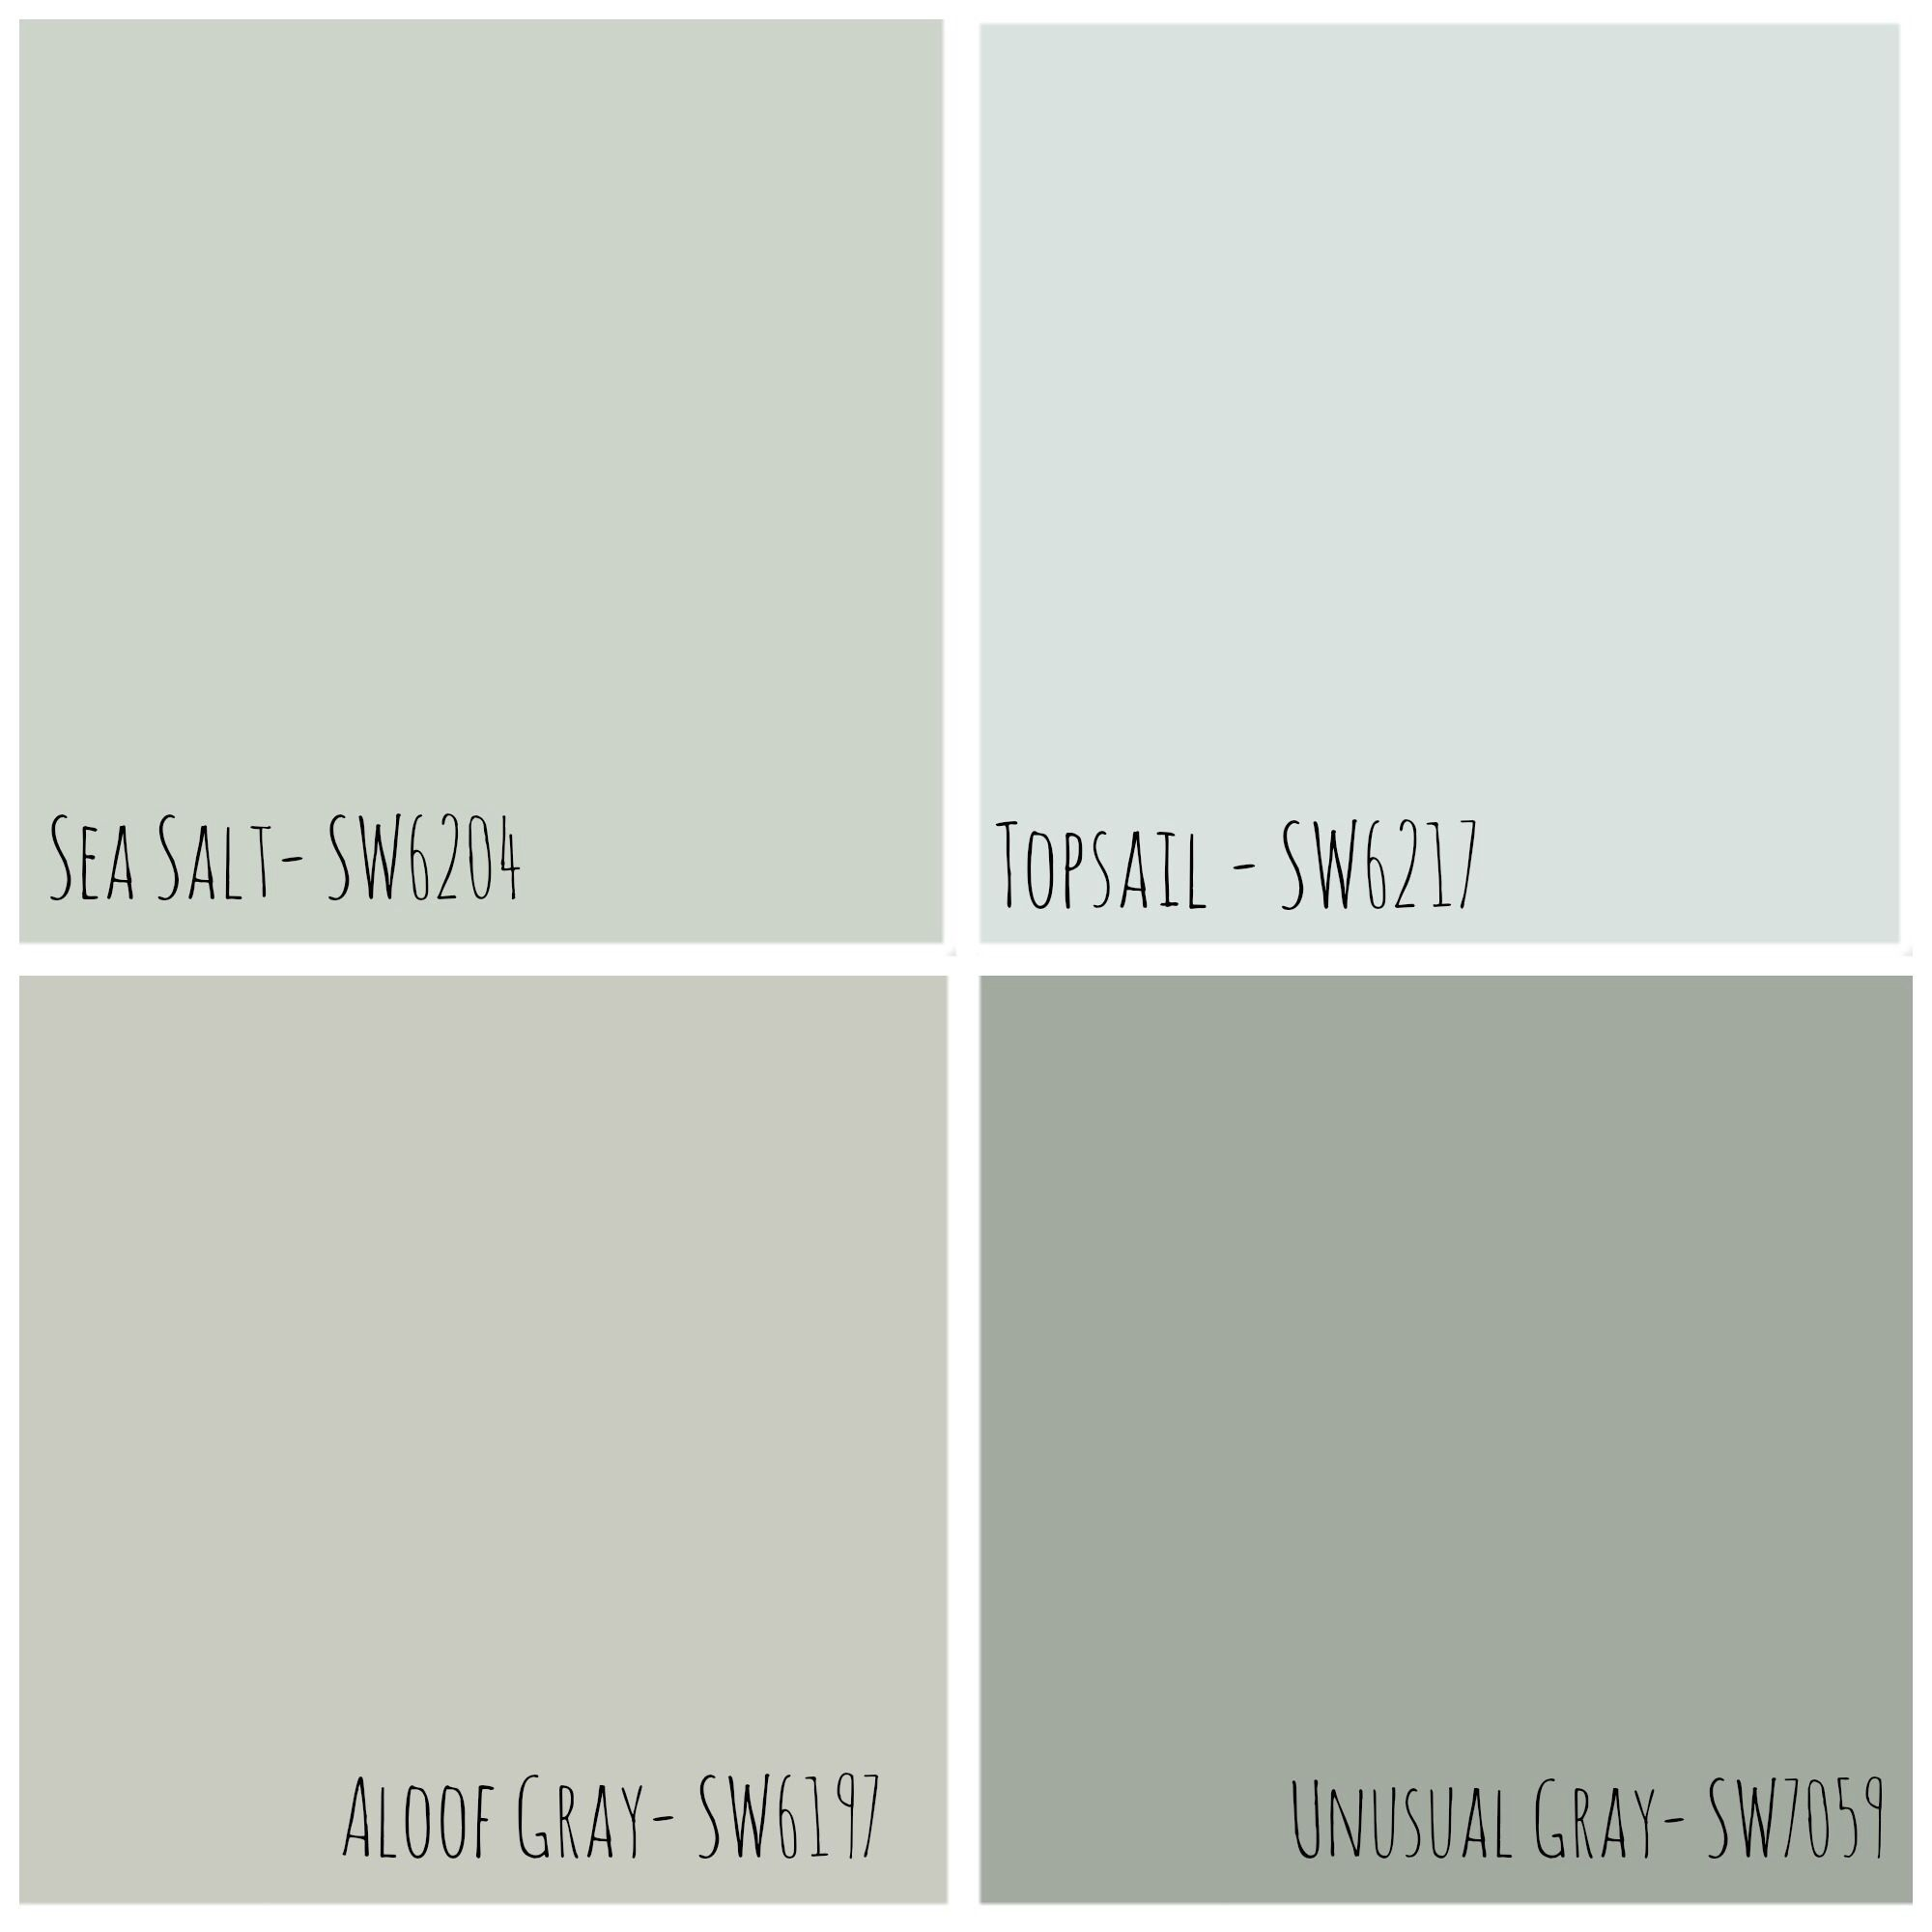 Image Result For Sea Salt Sherwin Williams Paint Strip Sherwin Williams Paint Colors Paint Colors For Home Room Colors